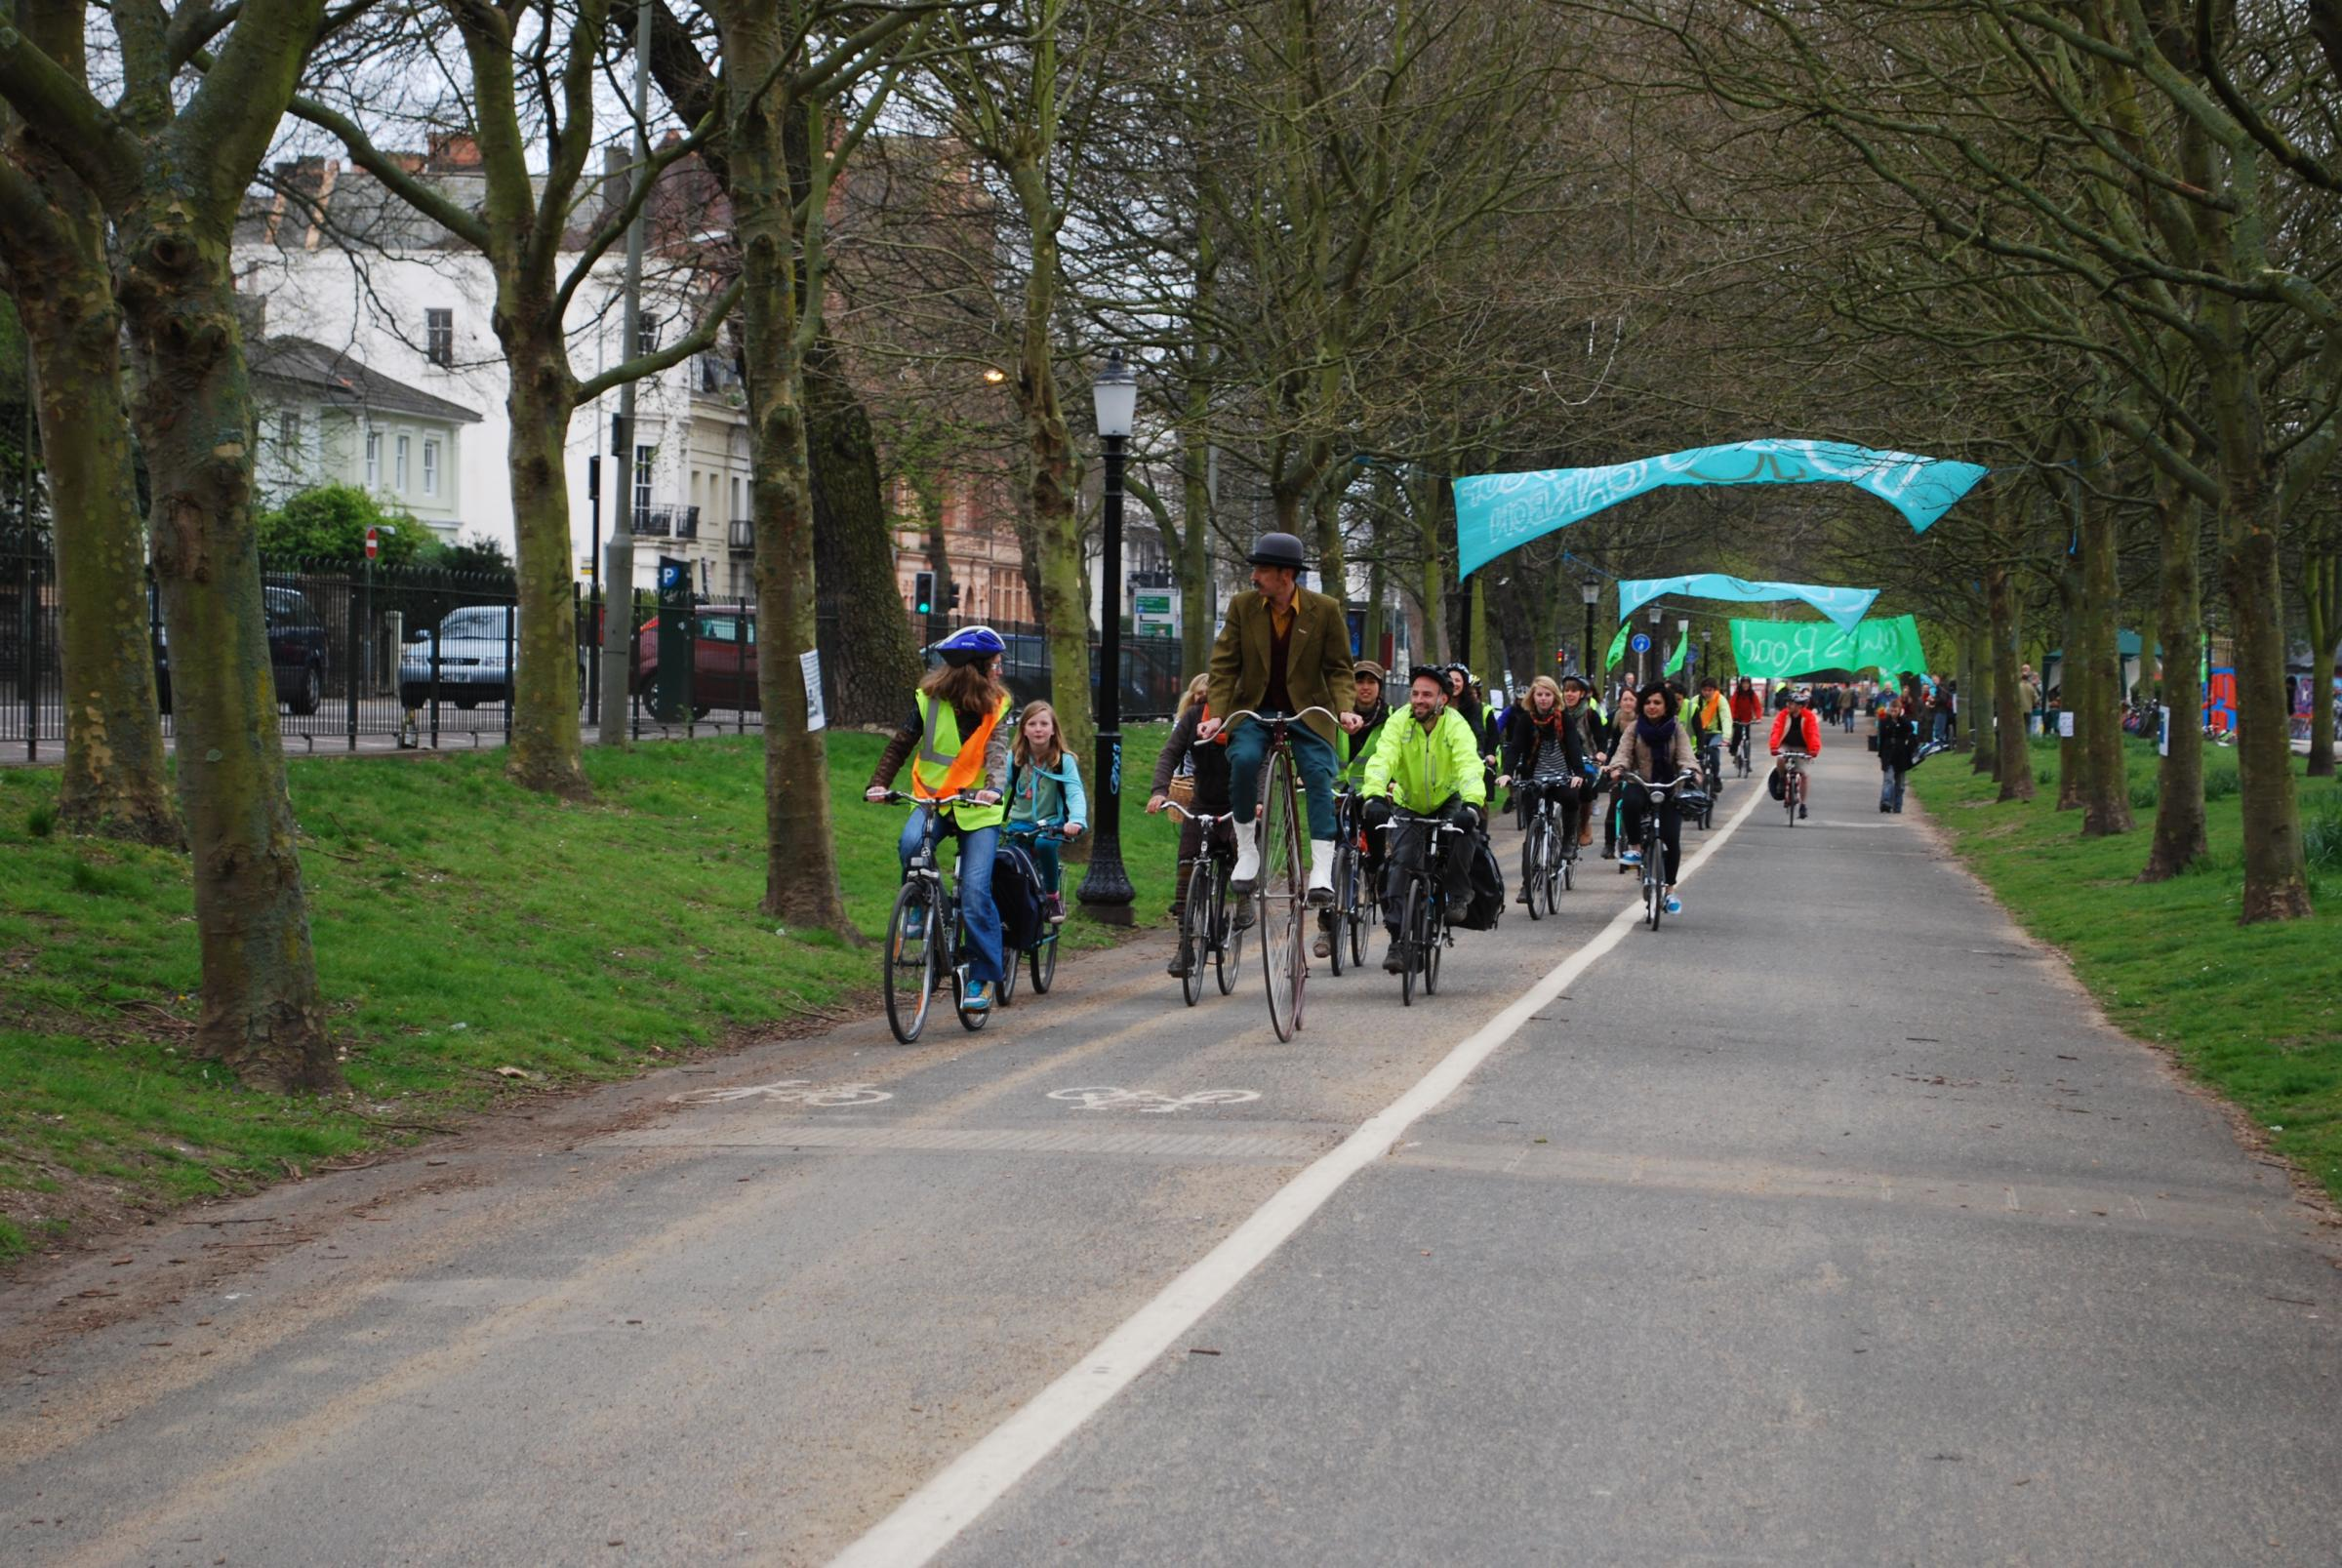 The Lewes Road Bike Train, launched in 2010, is one scheme encouraging Brighton people to cycle to work